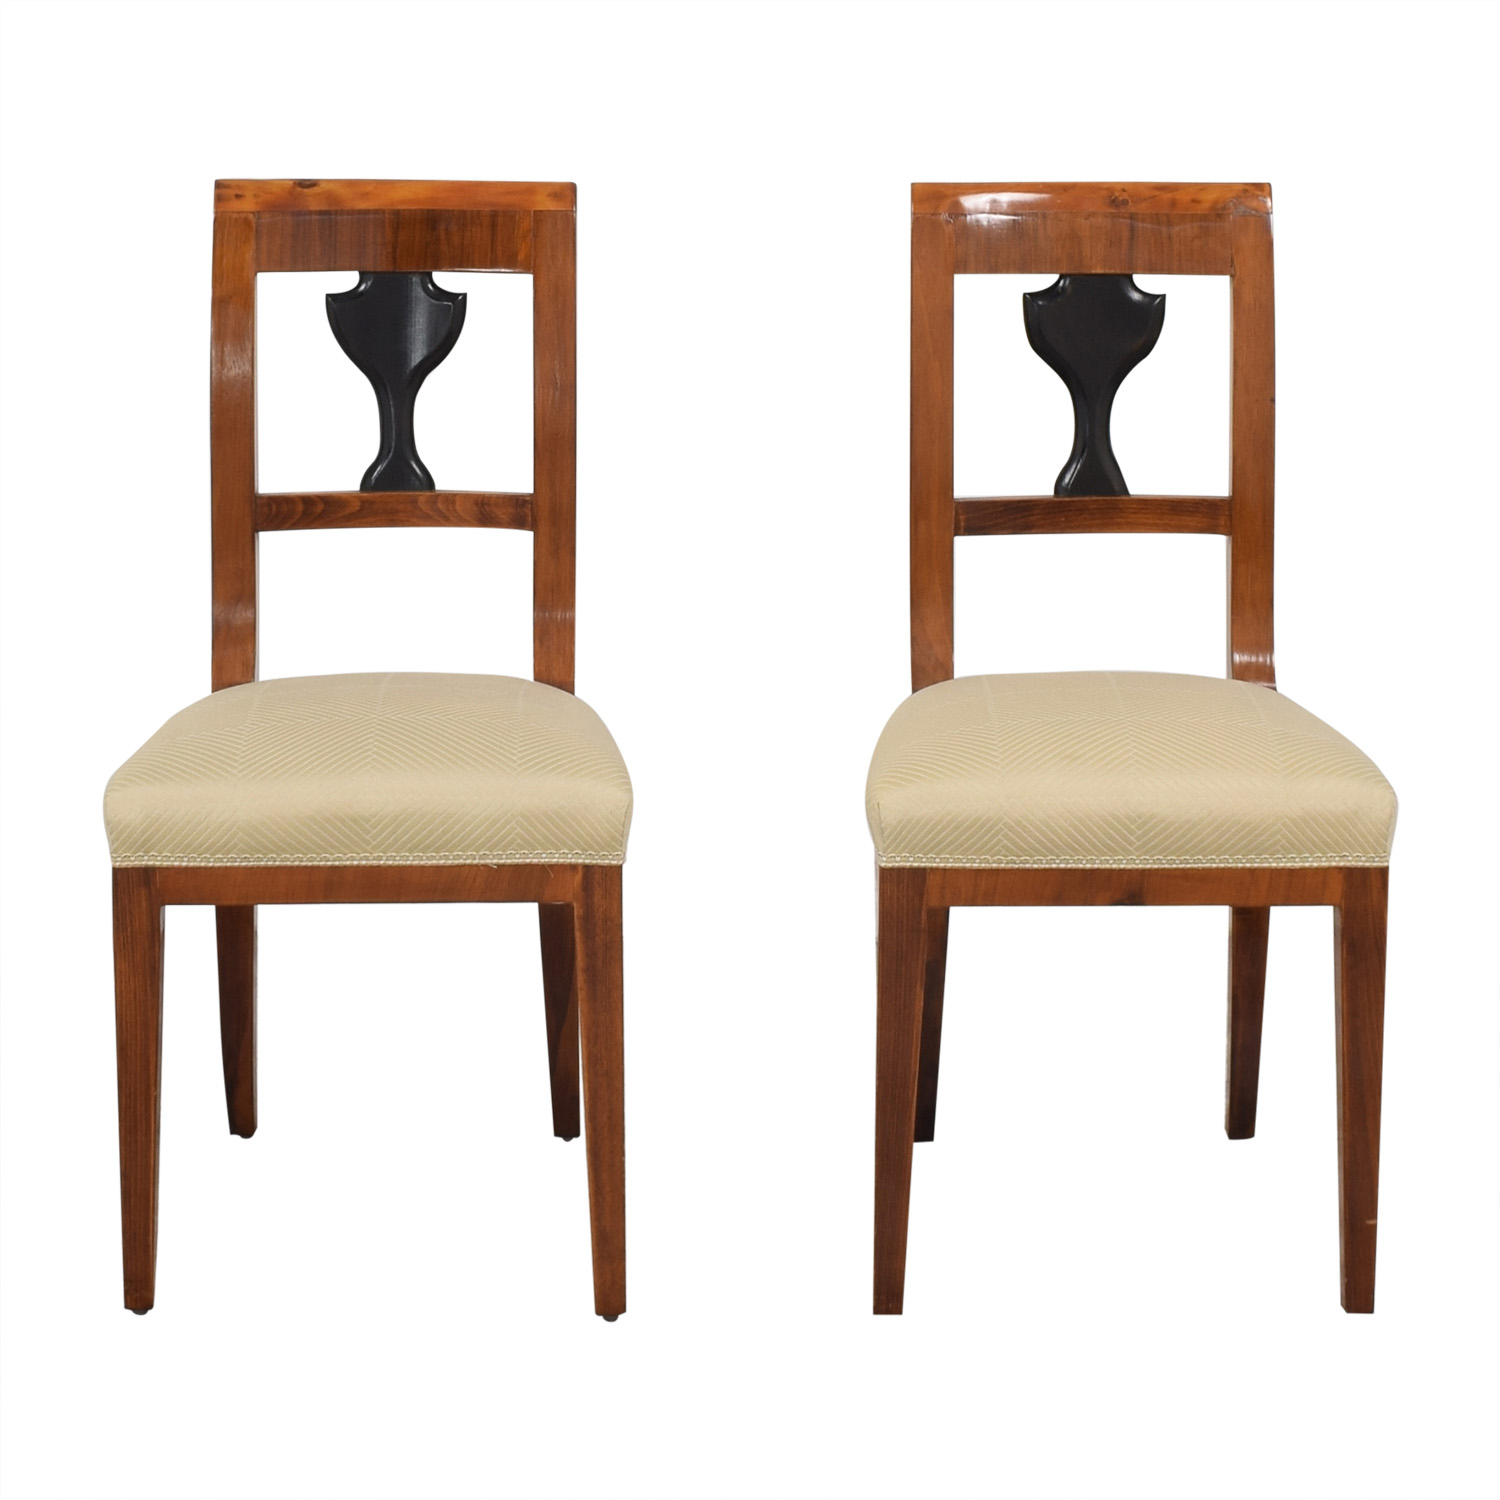 shop ABC Carpet & Home Upholstered Dining Chairs online